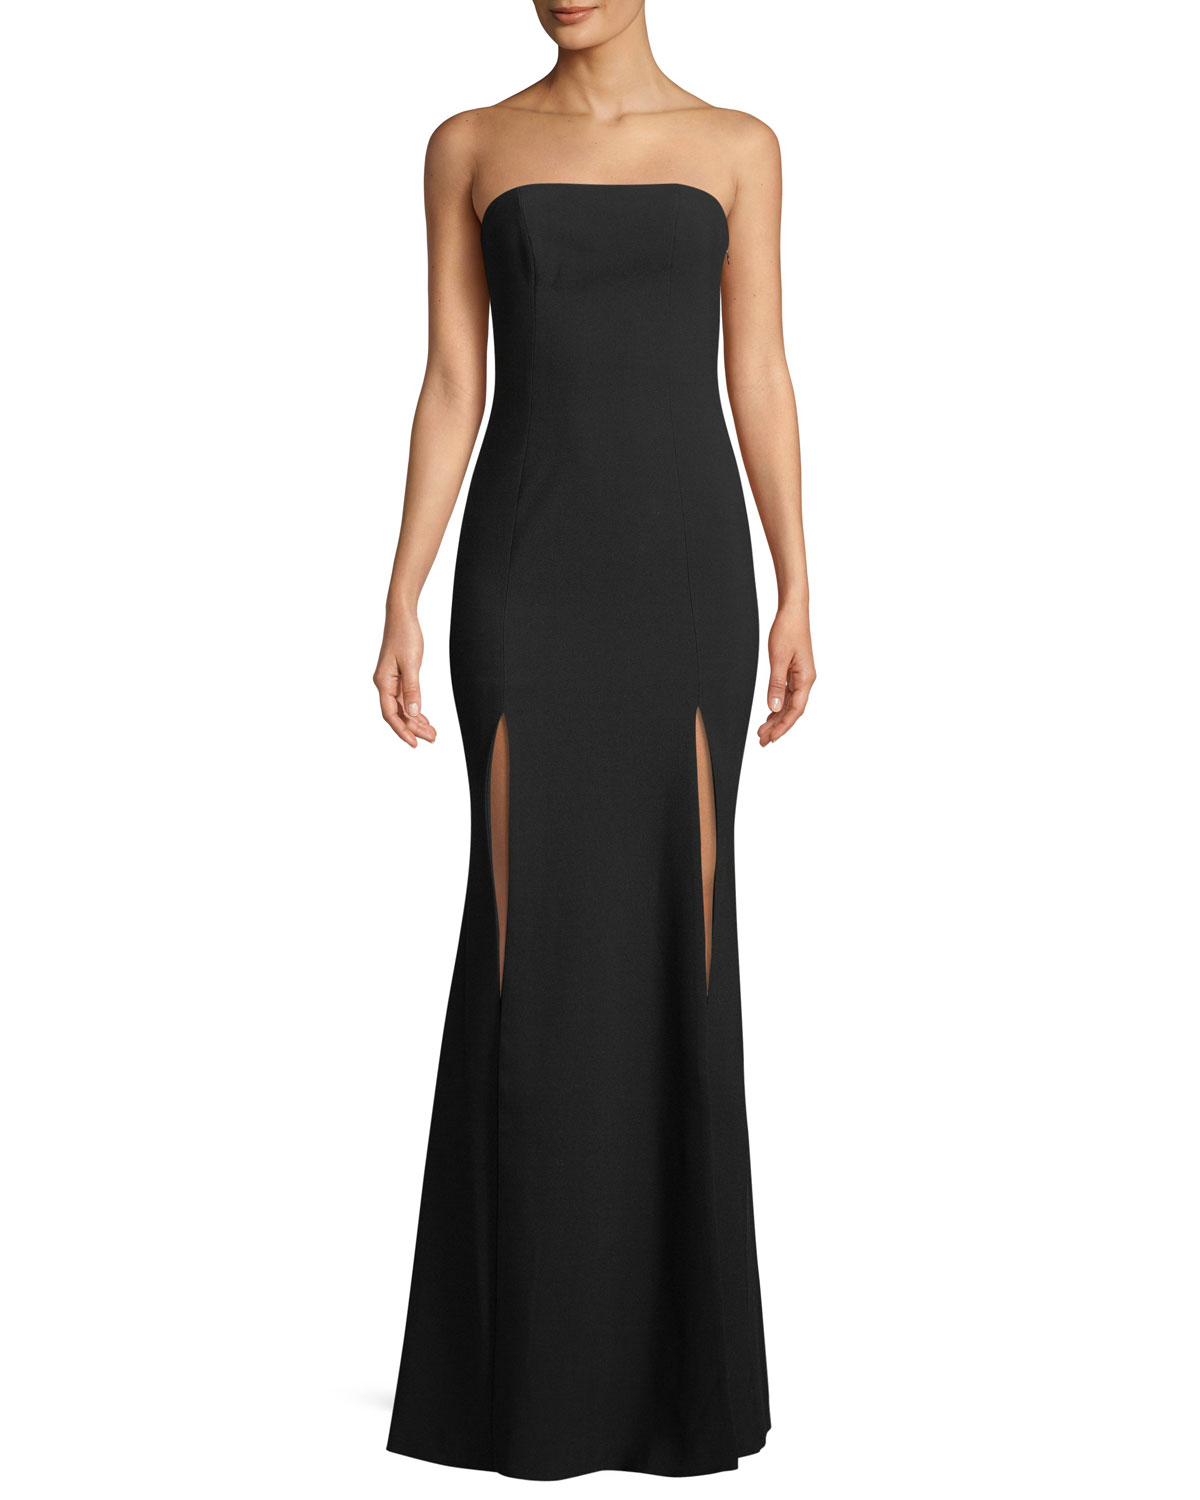 Likely Avalina Strapless Gown w/ Double-Slit